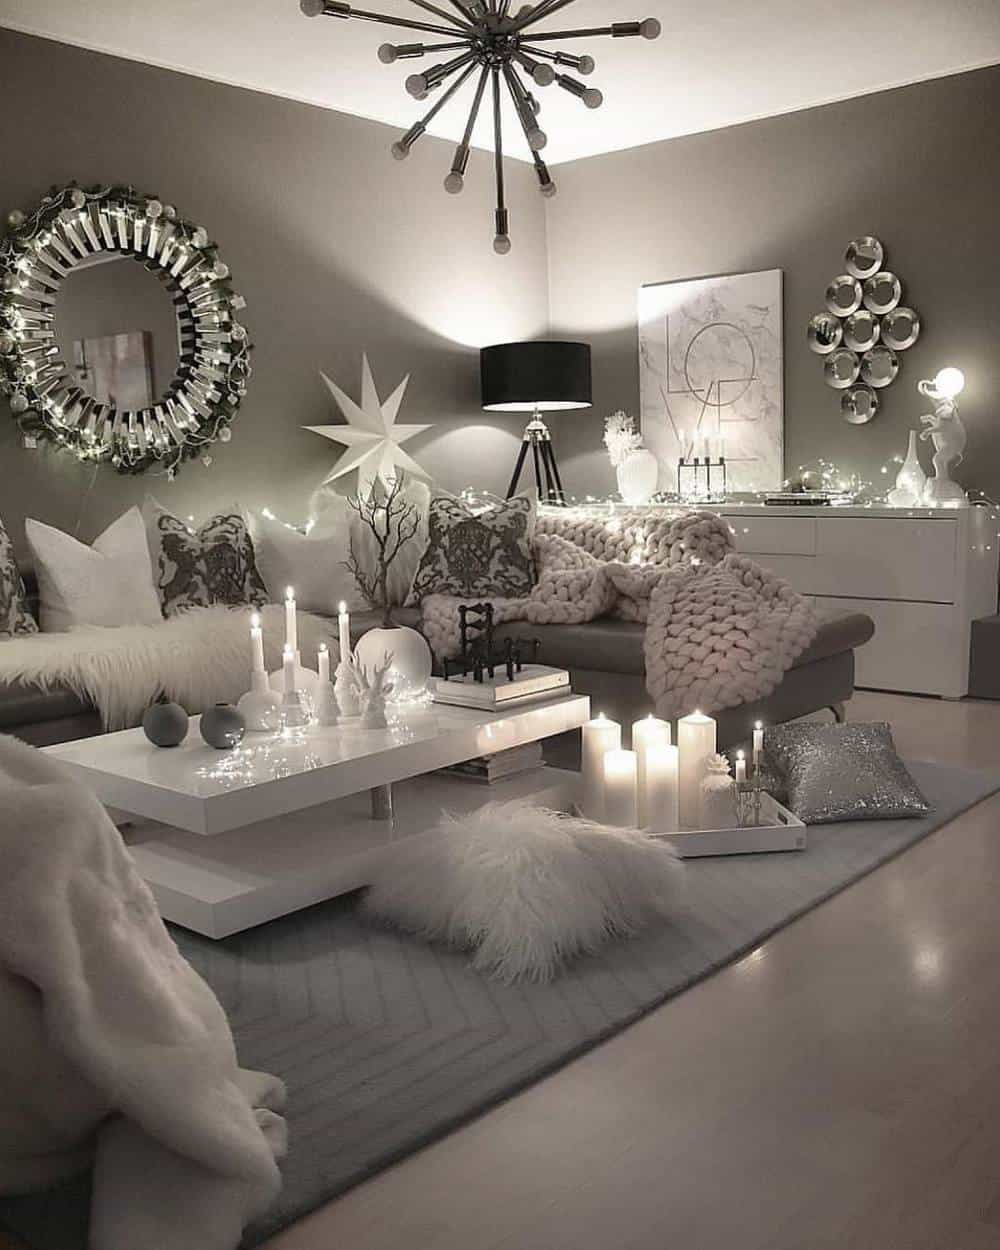 Decorate Your Living Room With These Inspiring Wall Ideas - living room area rugs